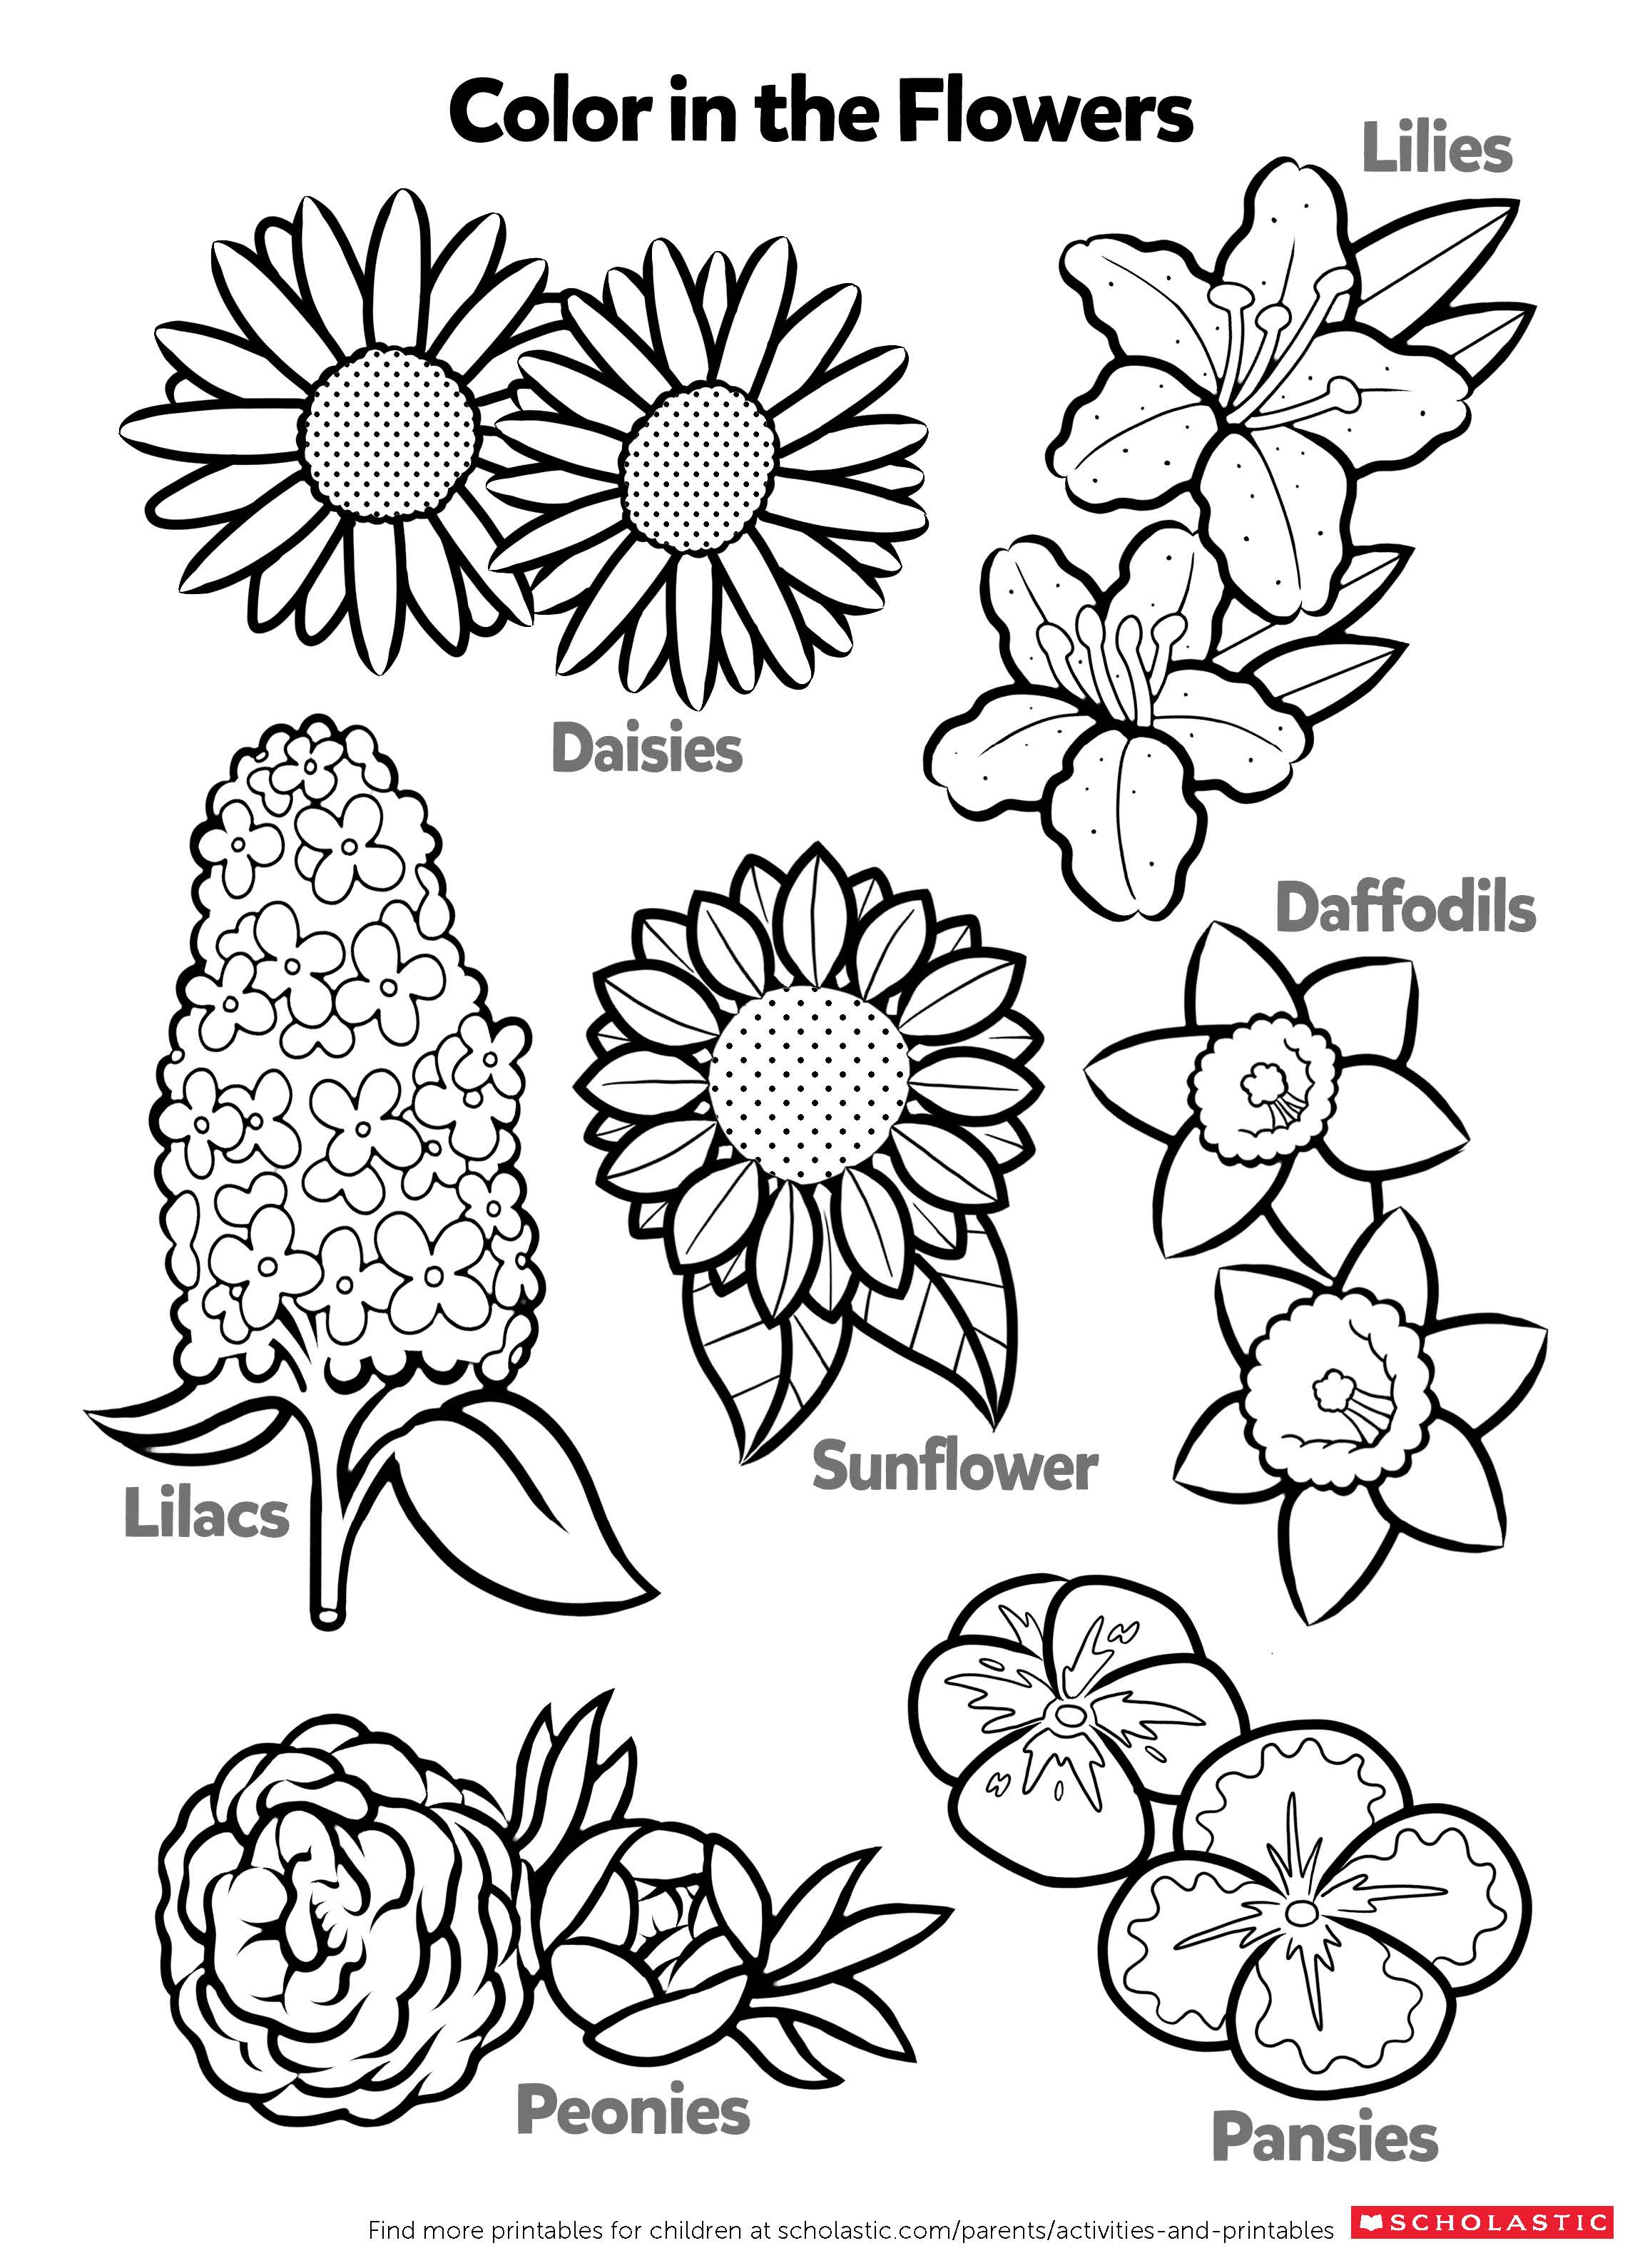 printable flowers coloring pages beautiful printable flowers coloring pages pages printable flowers coloring